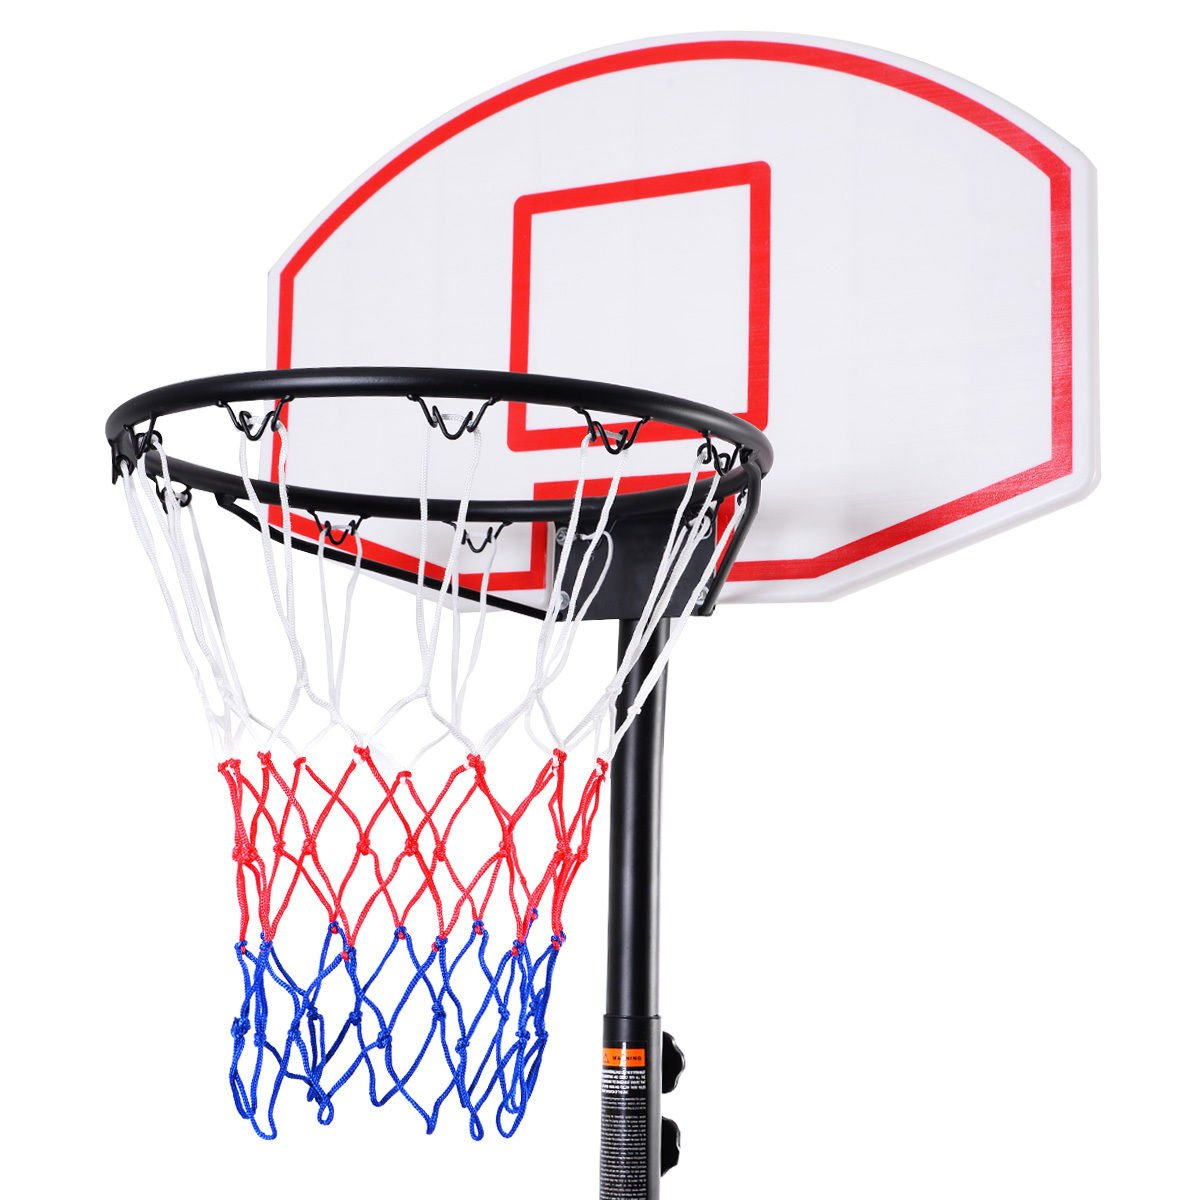 8e7a0a35423ac0 Amazon.com   Wheels Portable Adjustable Height Basketball Hoop Stand  Backboard Whole System   Sports   Outdoors